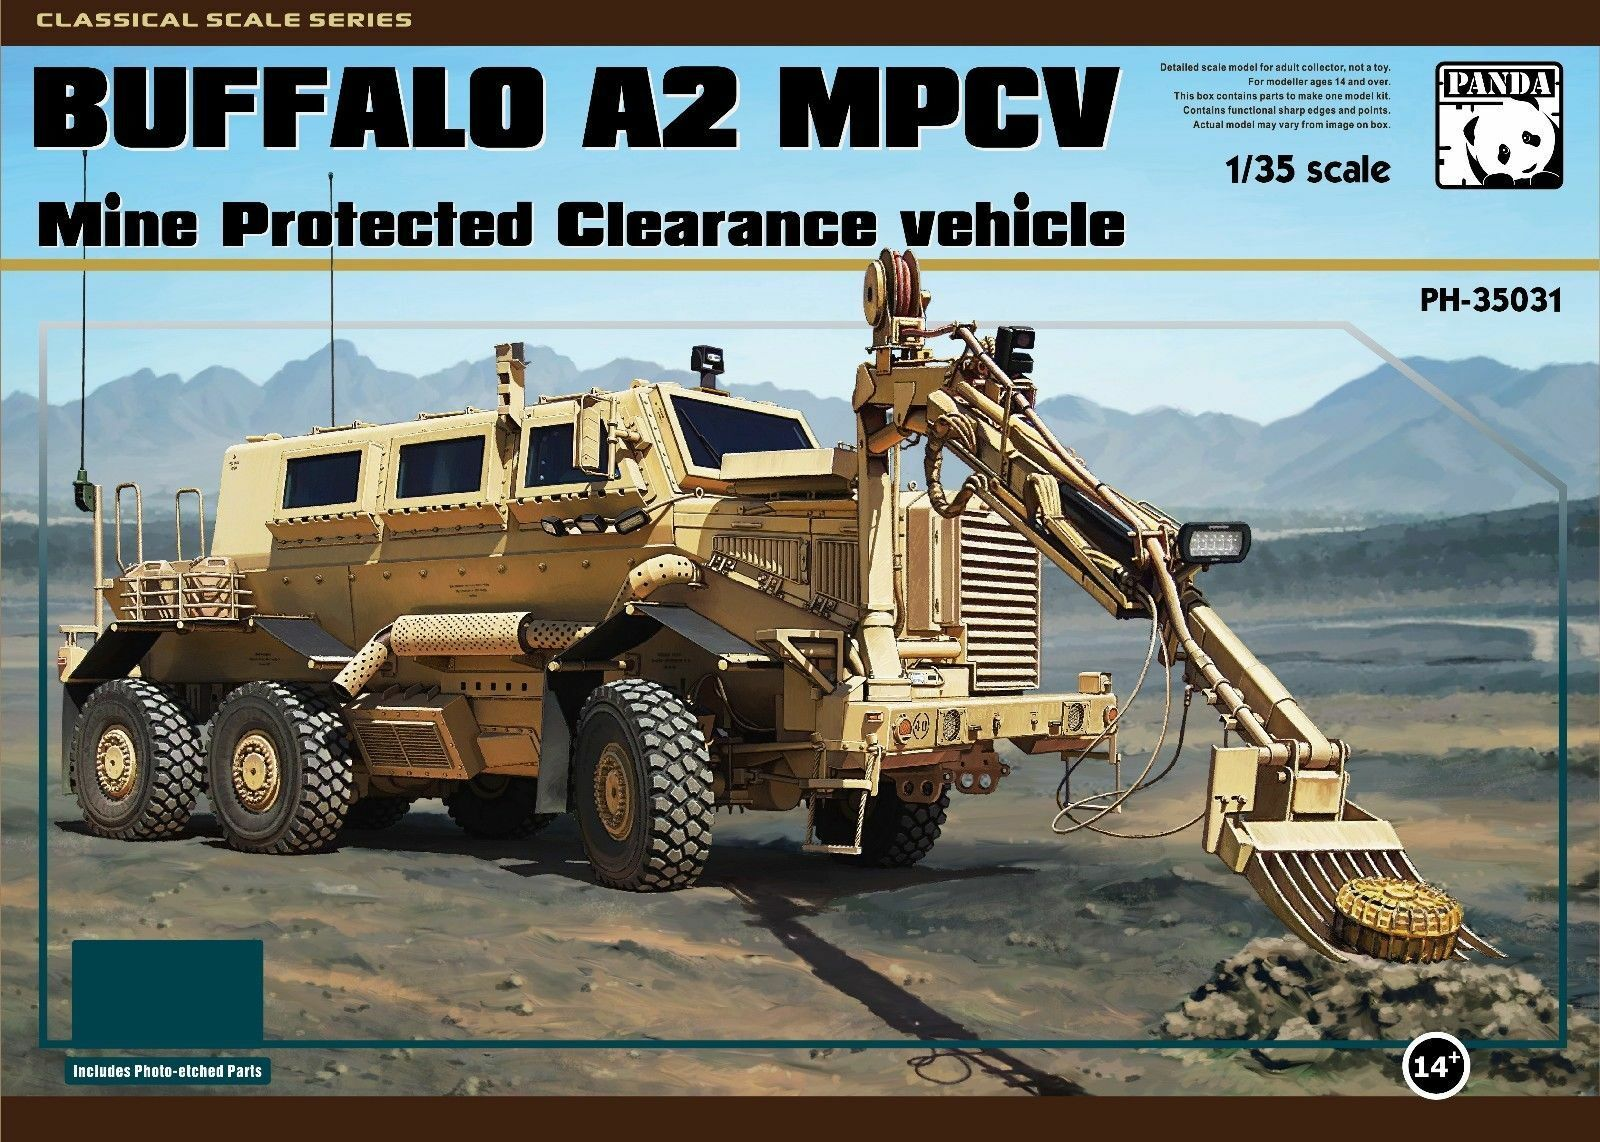 Panda 1 35 Buffalo A2 MPCV Mine Predected Clearance Vehicle